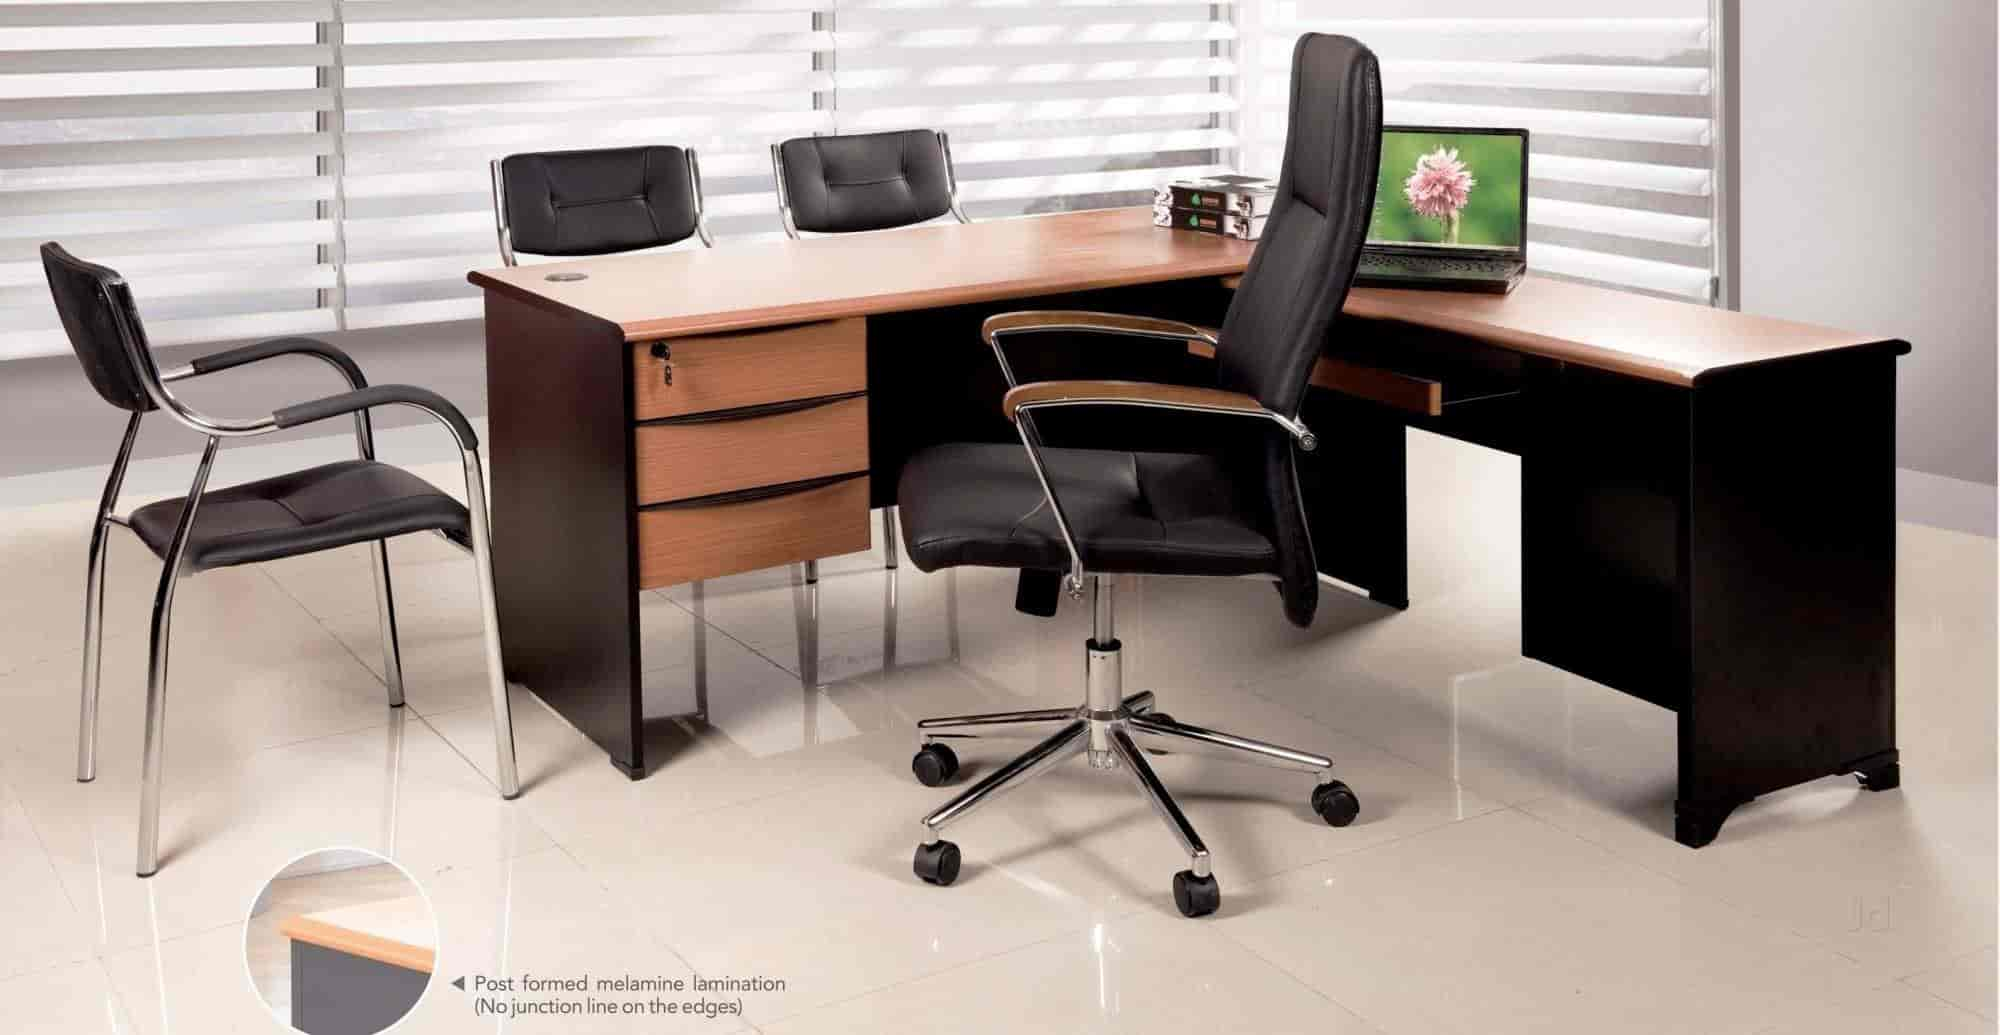 Stellar Furniture Lifestyle Kirti Nagar Office Dealers In Delhi Justdial